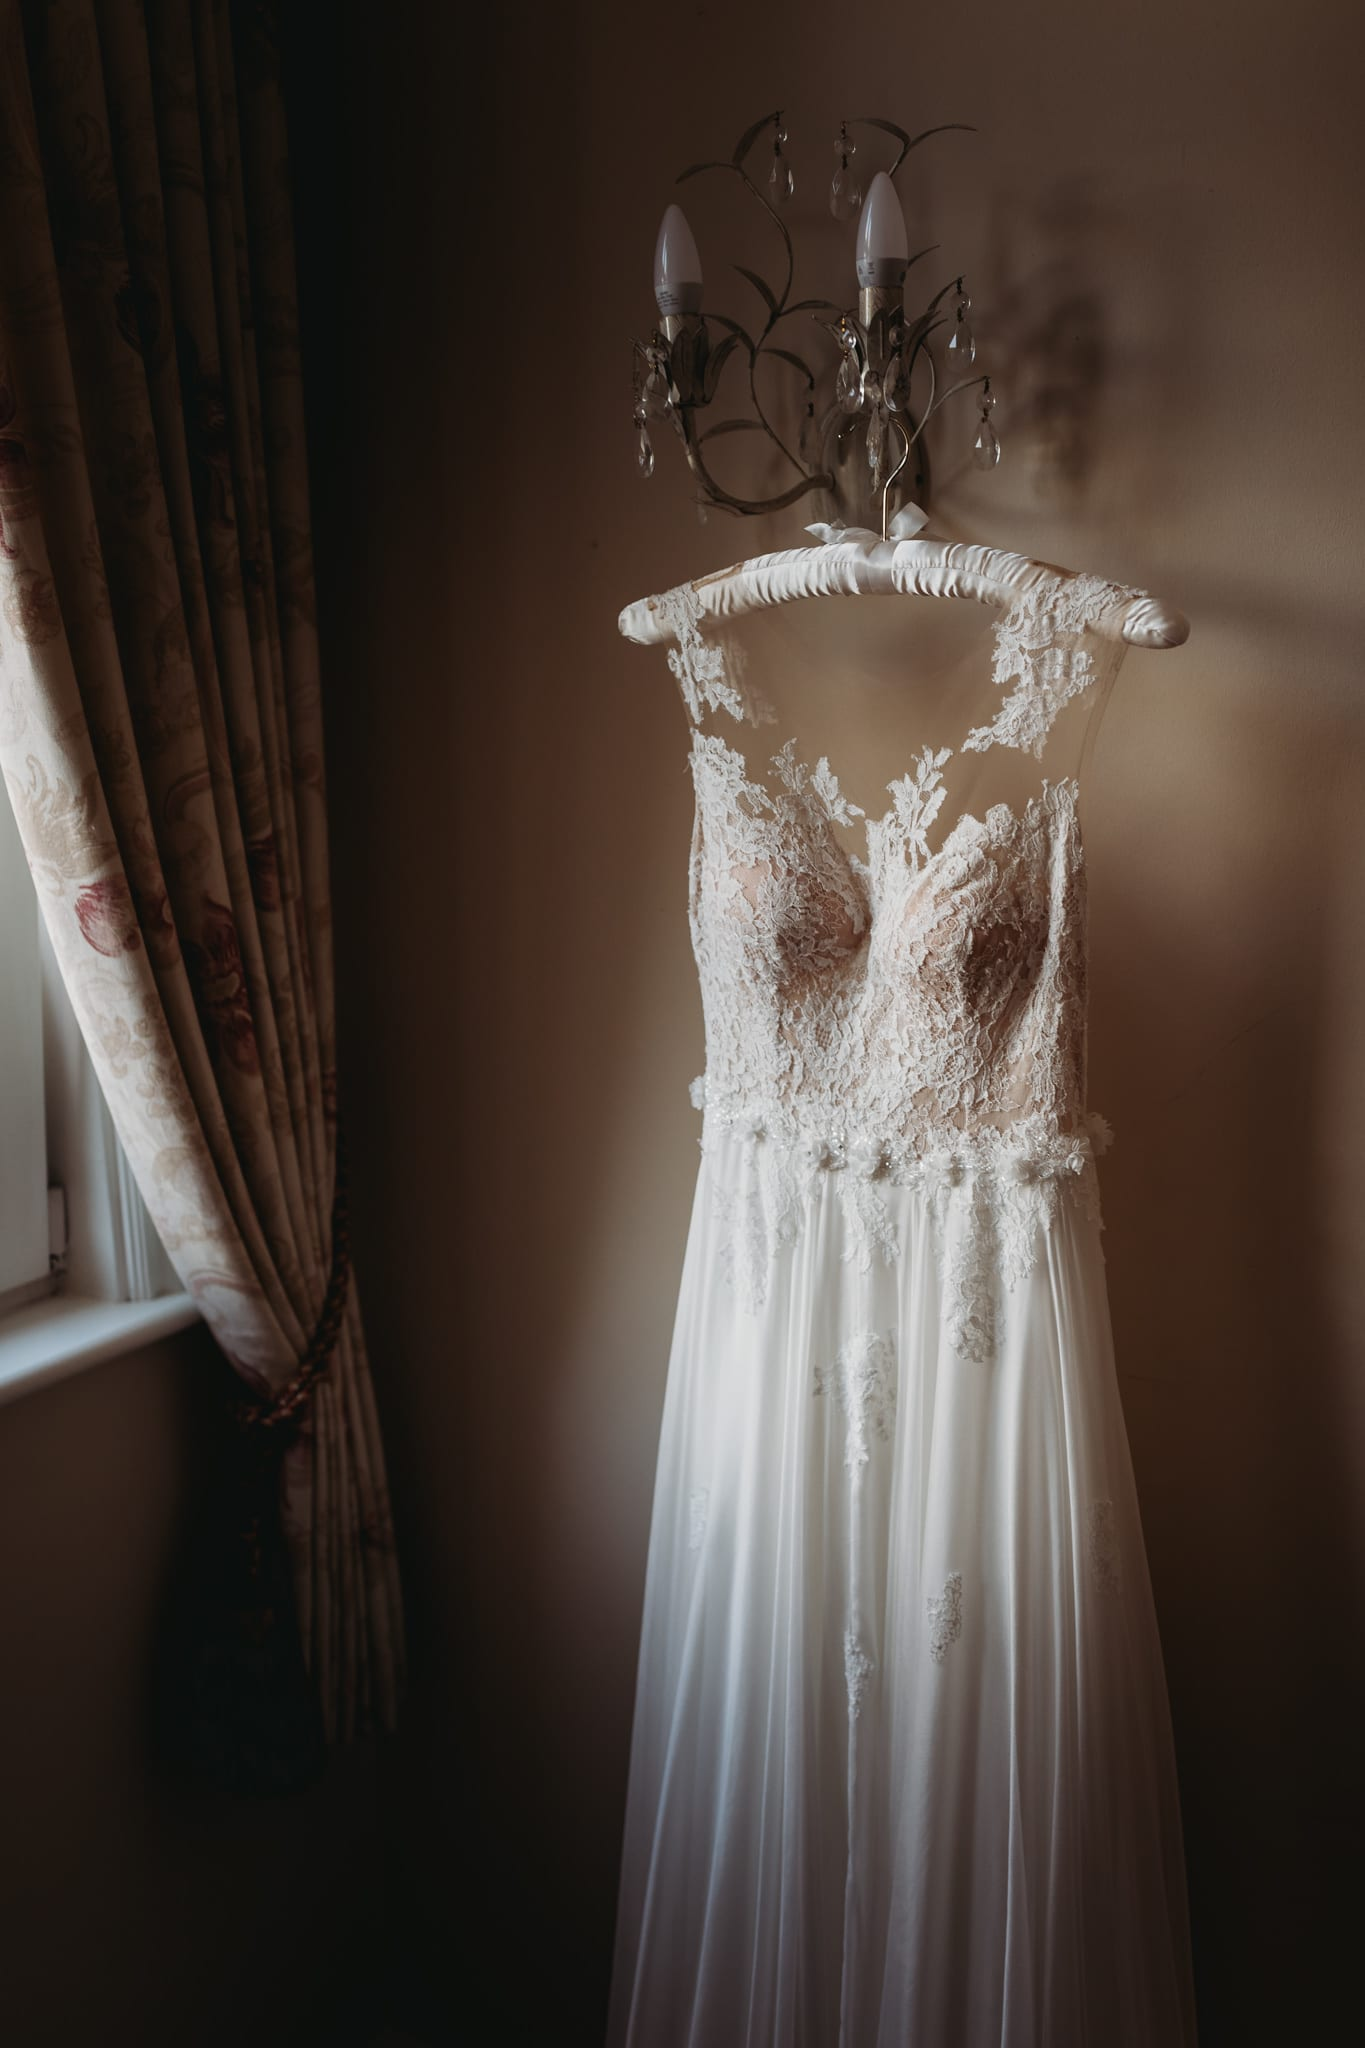 closeup of wedding dress hanging from a chandelier